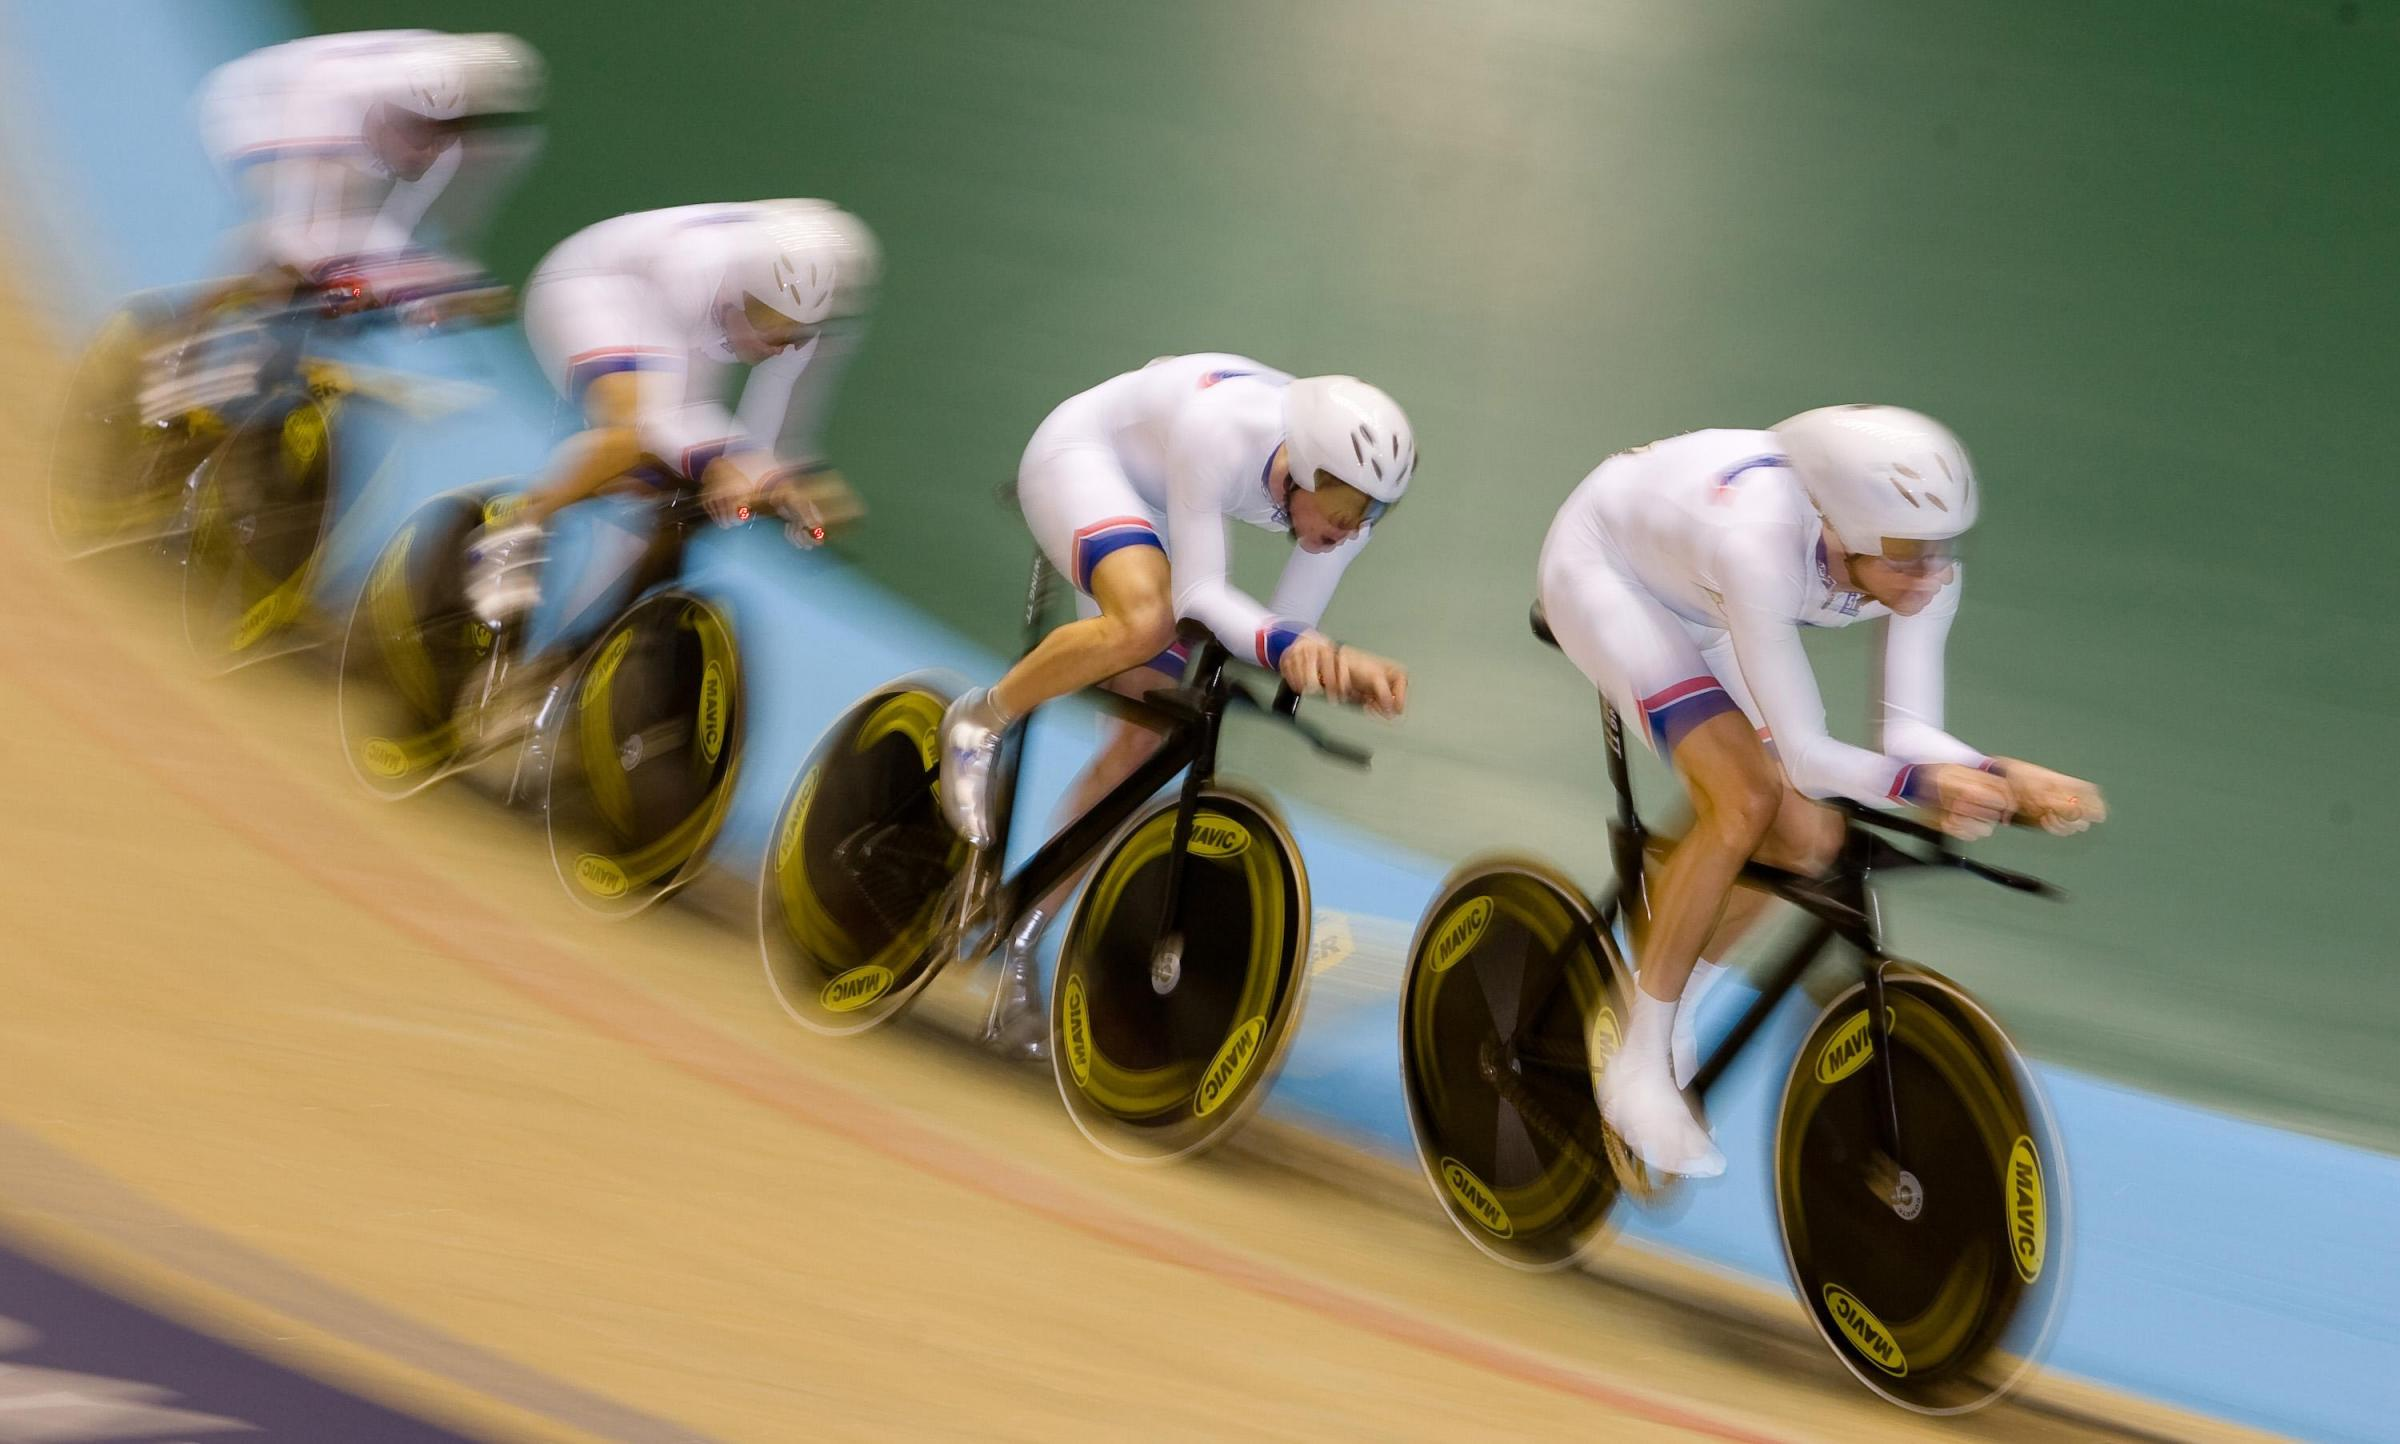 David Viner wants a velodrome built in the West Midlands. Photo: Gareth Copley/PA Archive/PA Images